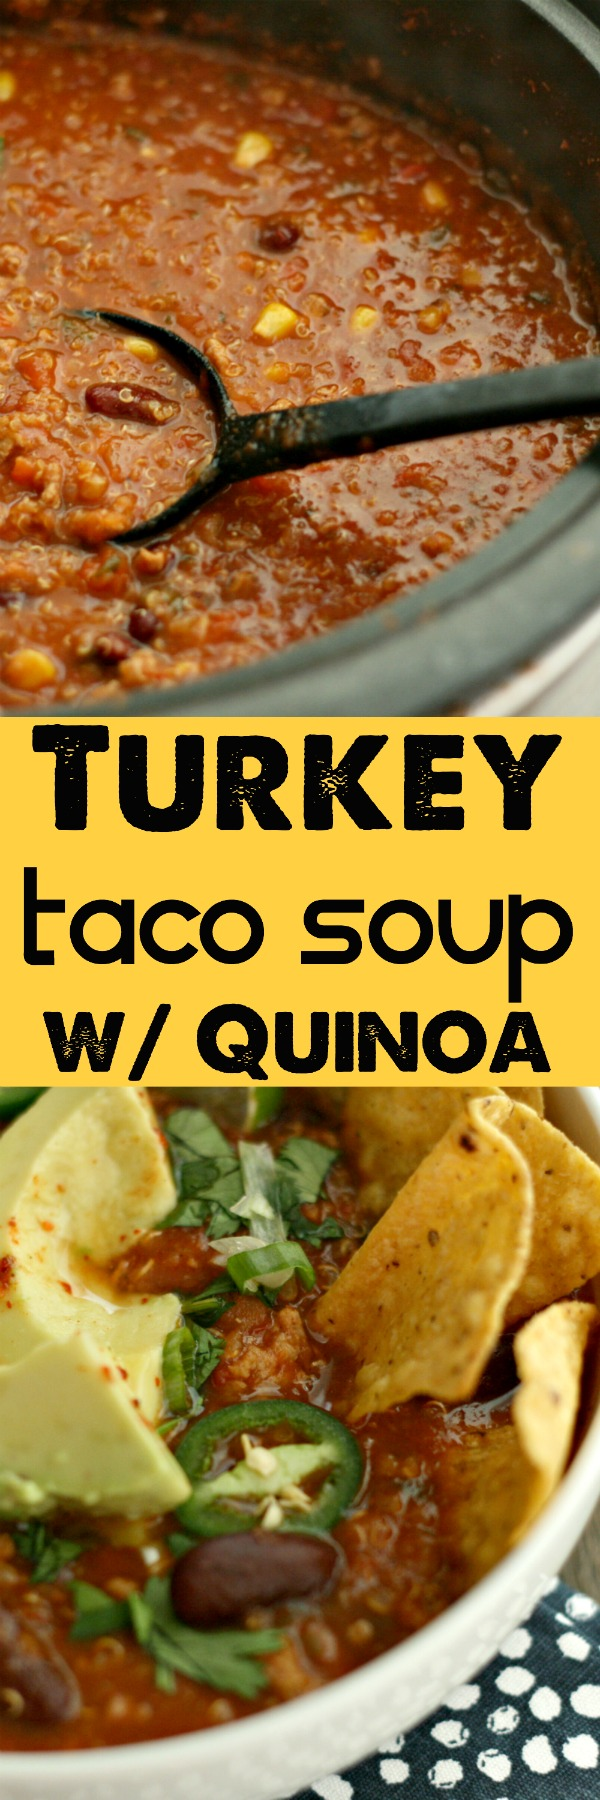 Switch up your Taco Tuesday with this Slow-Cooker Turkey Taco Soup using @randallbeans and Quinoa! YUM!   http://randallbeans.com/2016/10/13/slow-cooker-turkey-taco-soup/